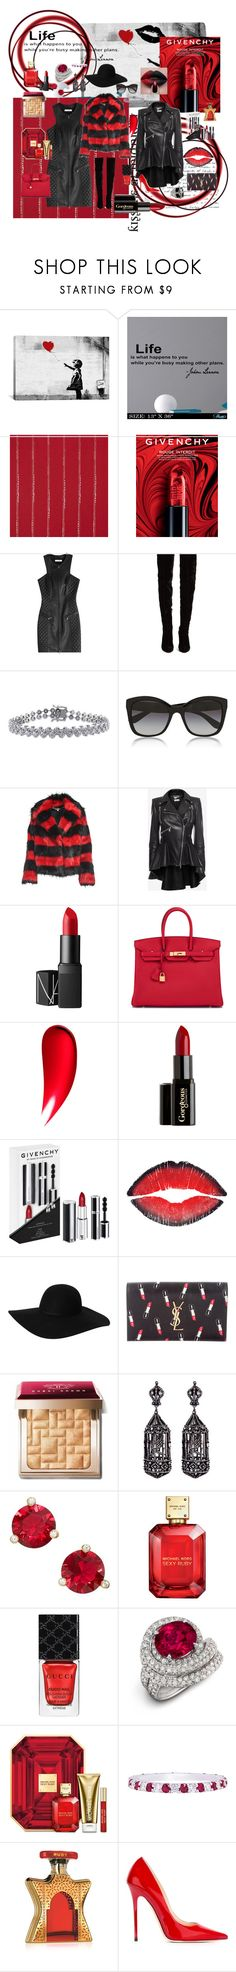 """""""Dark Kiss"""" by miss-amazing-grace ❤ liked on Polyvore featuring iCanvas, Givenchy, Pierre Balmain, Christian Louboutin, Ice, Dolce&Gabbana, McQ by Alexander McQueen, Alexander McQueen, NARS Cosmetics and Hermès"""